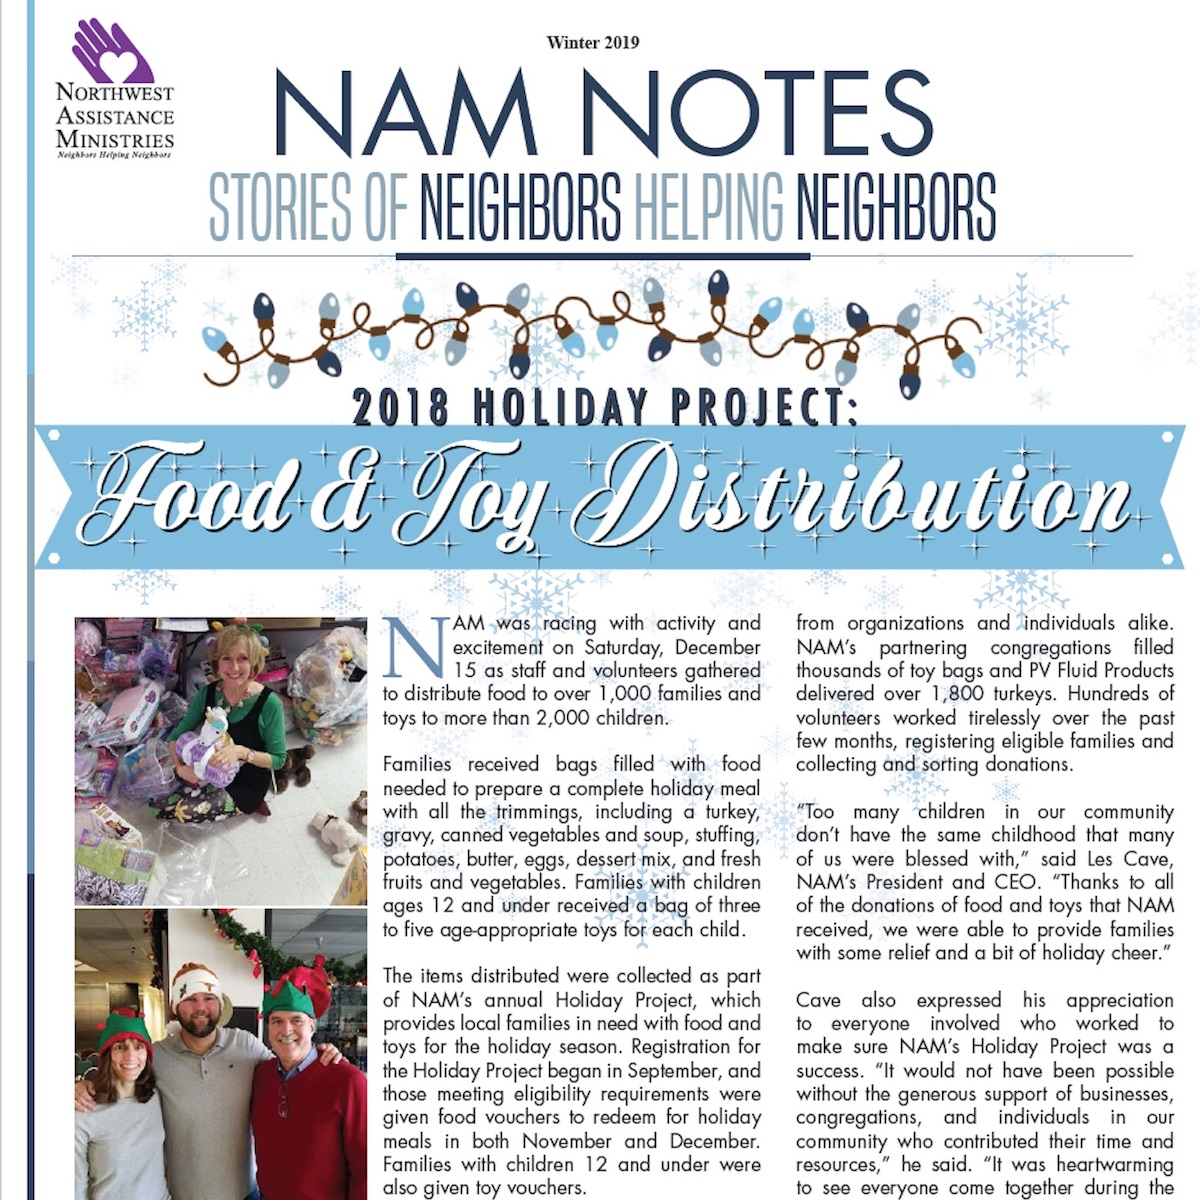 NAM Notes Winter 2019